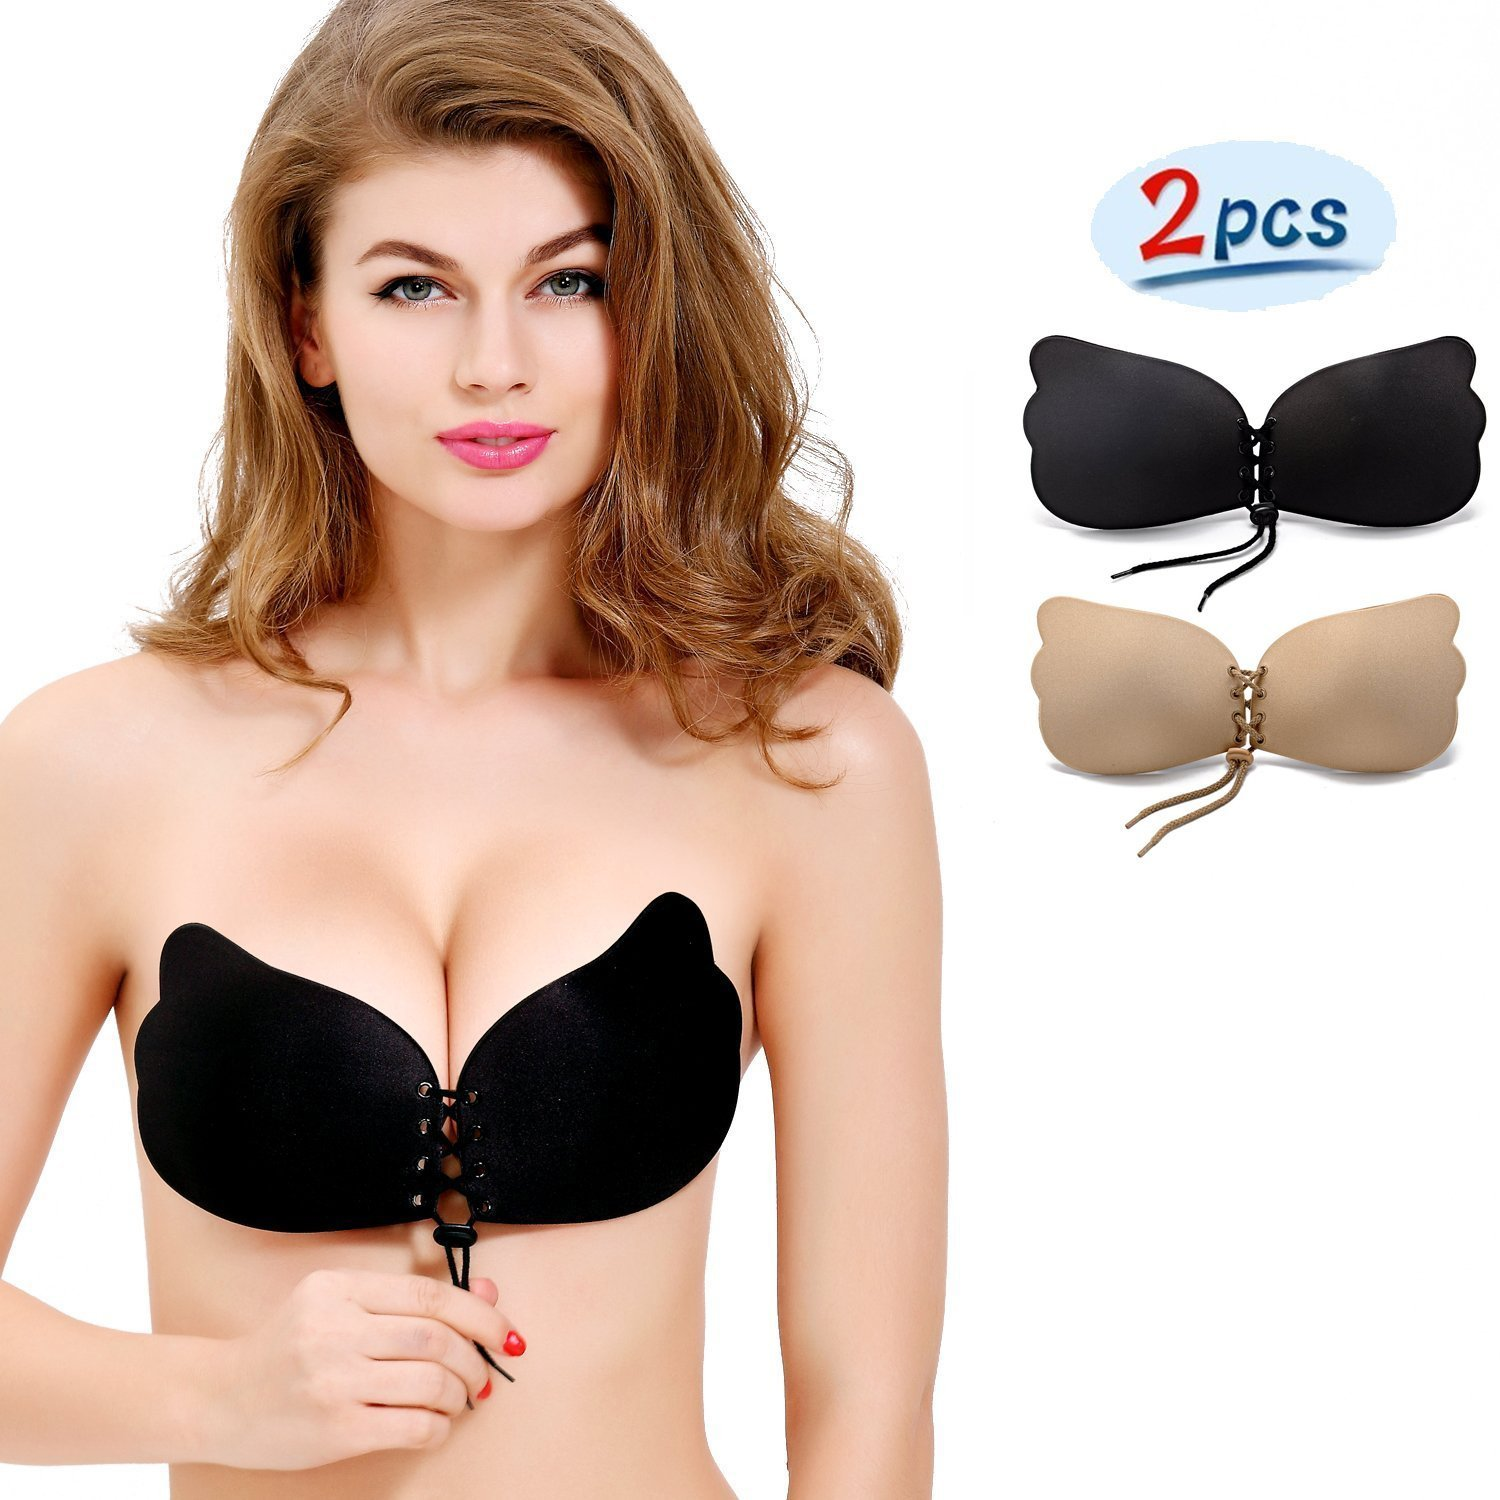 d6d26674dc84f NATIA Strapless Backless Push-up Silicone Drawstring Bra  New Version  (2  Pack)  Amazon.ca  Clothing   Accessories